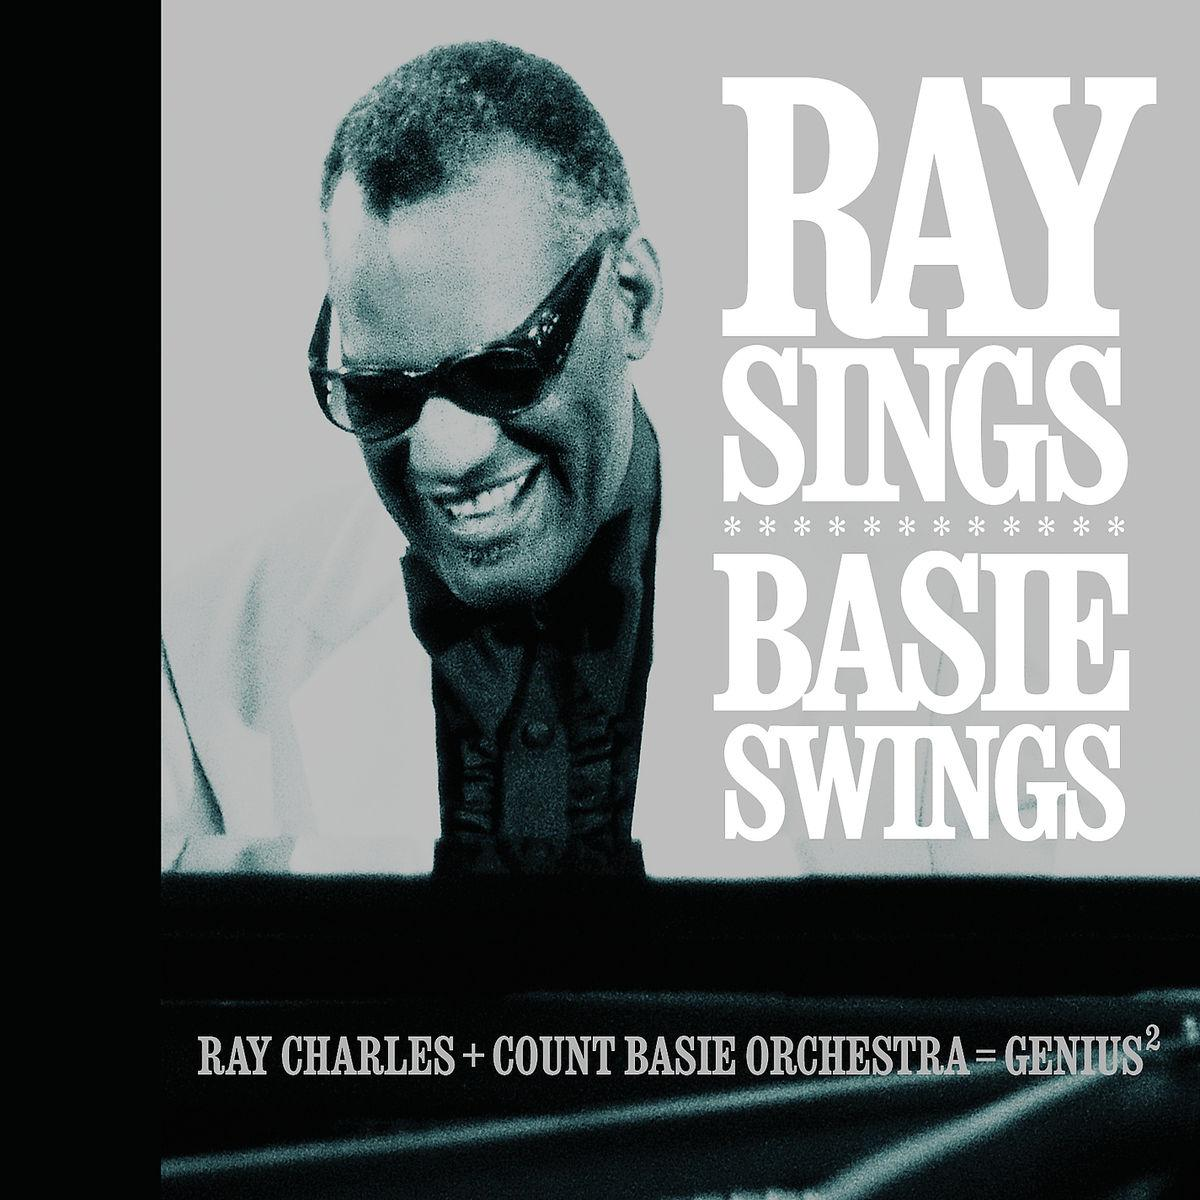 Charles Ray & Basie Count Orchestra - Ray Sings, Basie Swings